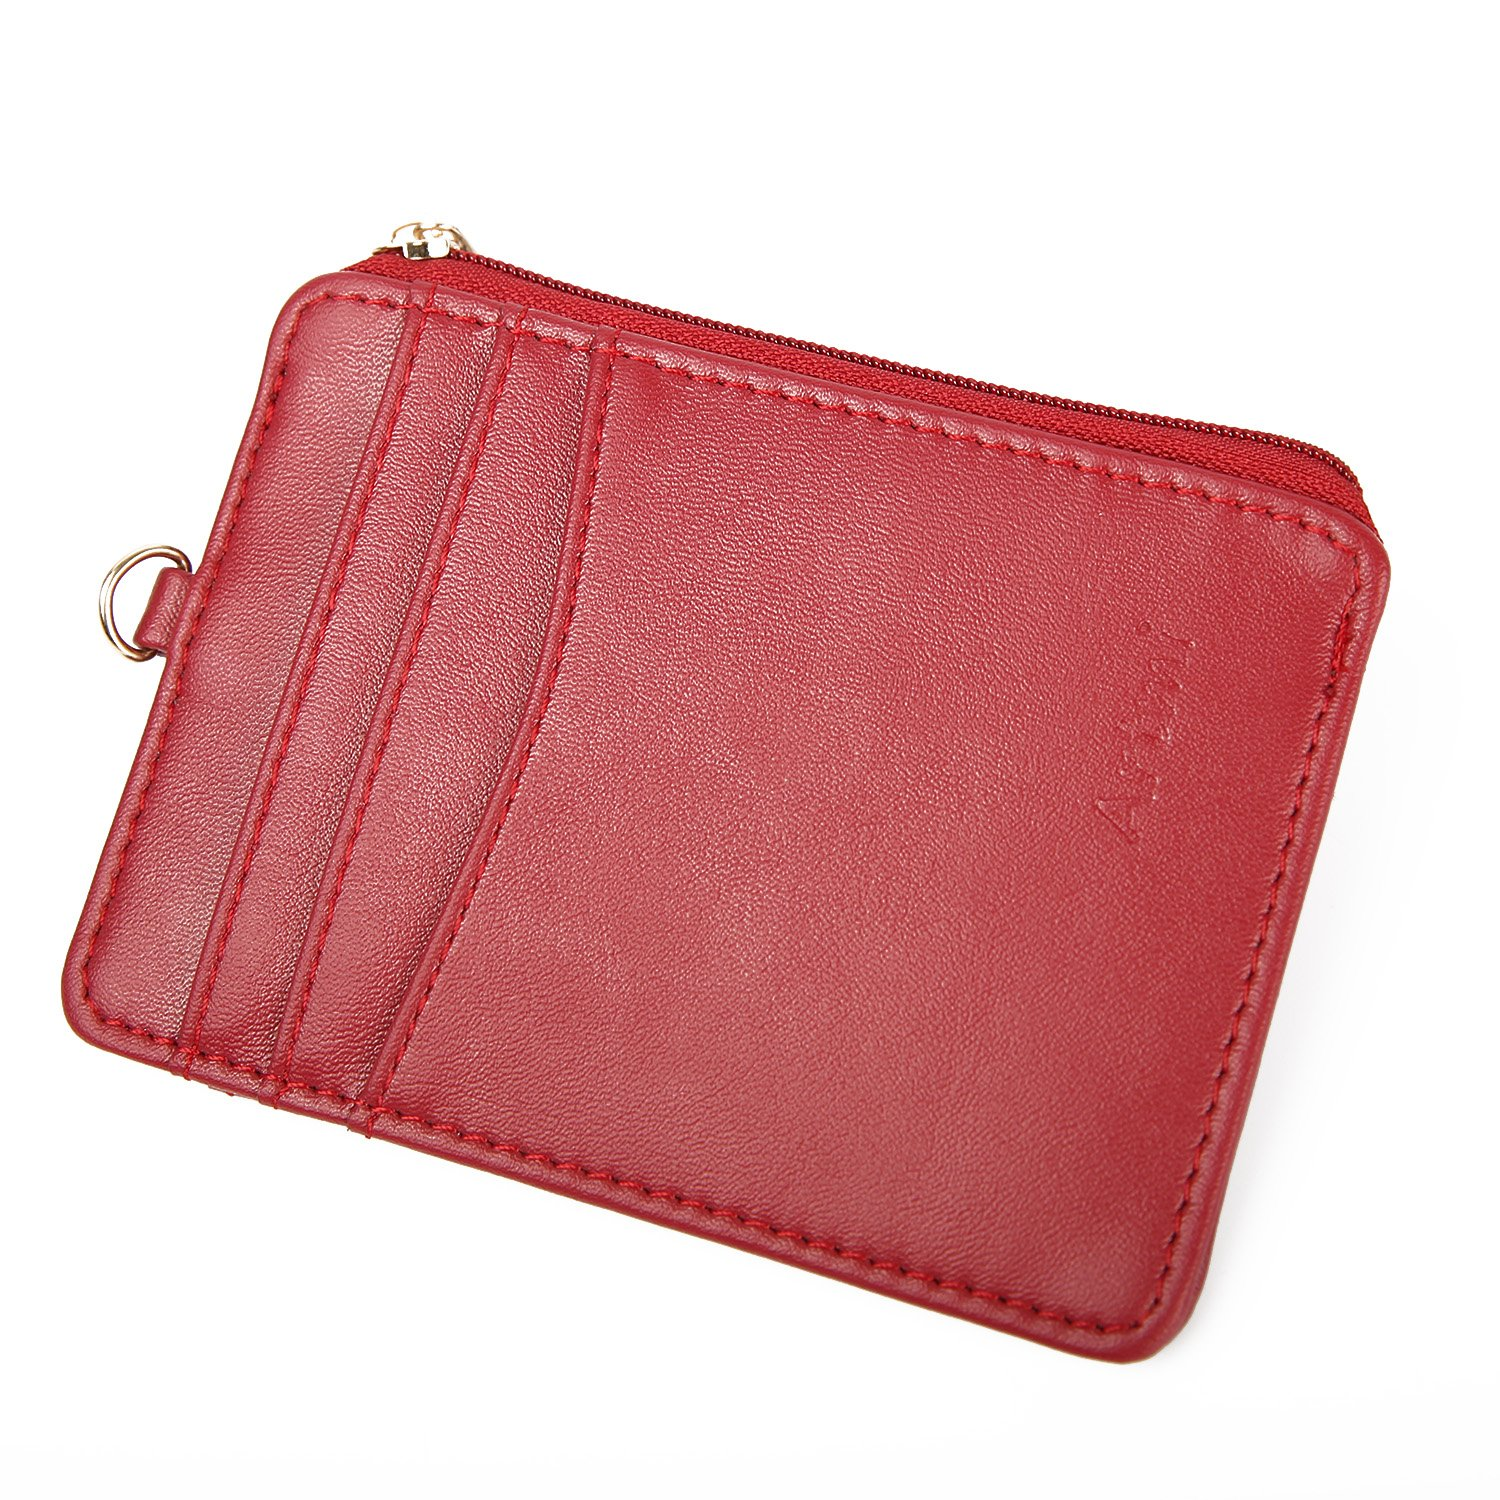 Women Wallet RFID Card Holder Card Case Fashion Credit Card Case with Key Ring (Red) AW051-3